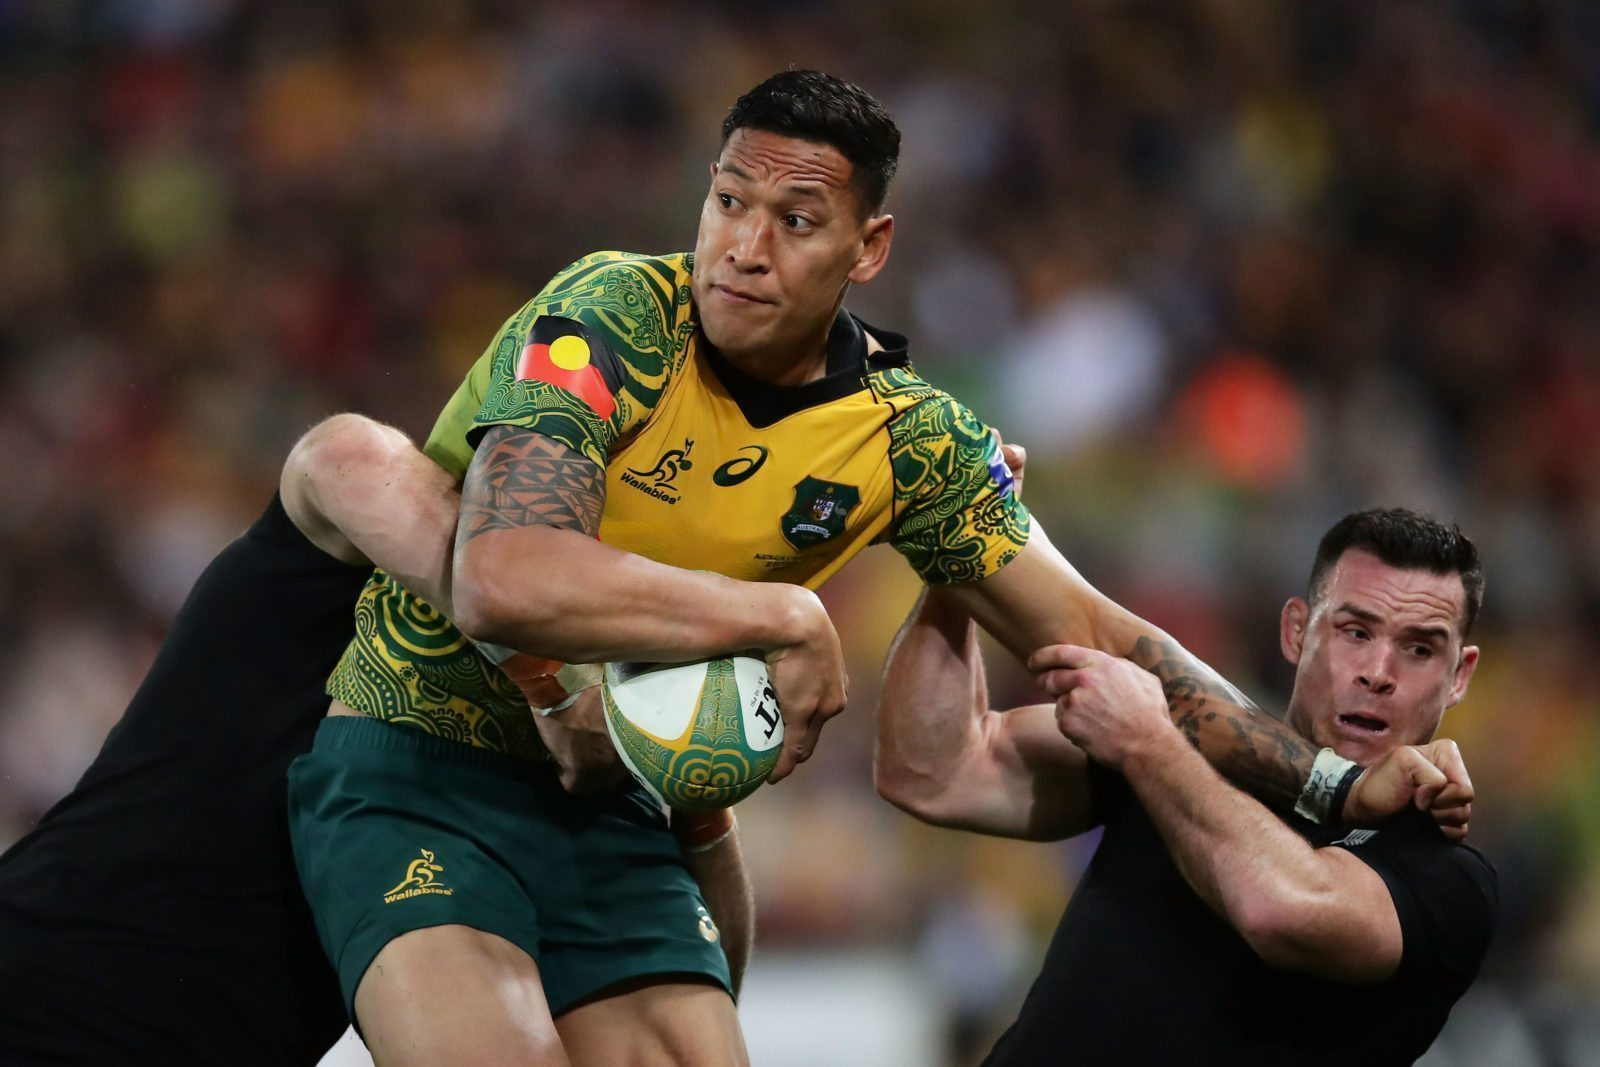 BRISBANE, AUSTRALIA - OCTOBER 21: Israel Folau of the Wallabies is tackled by Ryan Crotty of the All Blacks during the Bledisloe Cup match between the Australian Wallabies and the New Zealand All Blacks at Suncorp Stadium on October 21, 2017 in Brisbane, Australia. (Photo by Matt King/Getty Images)